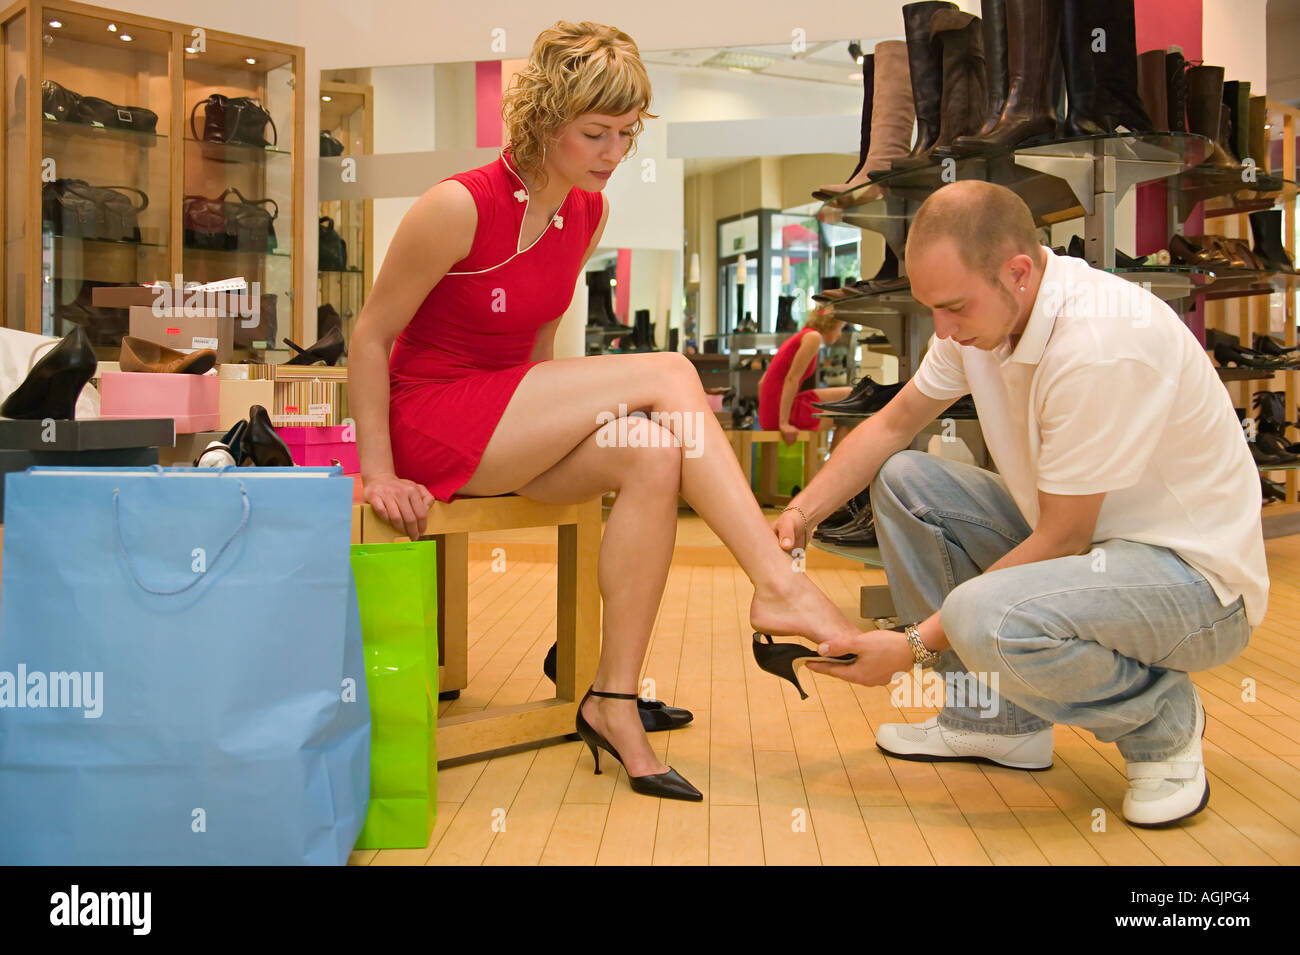 Man helping girlfriend try on shoes - Stock Image